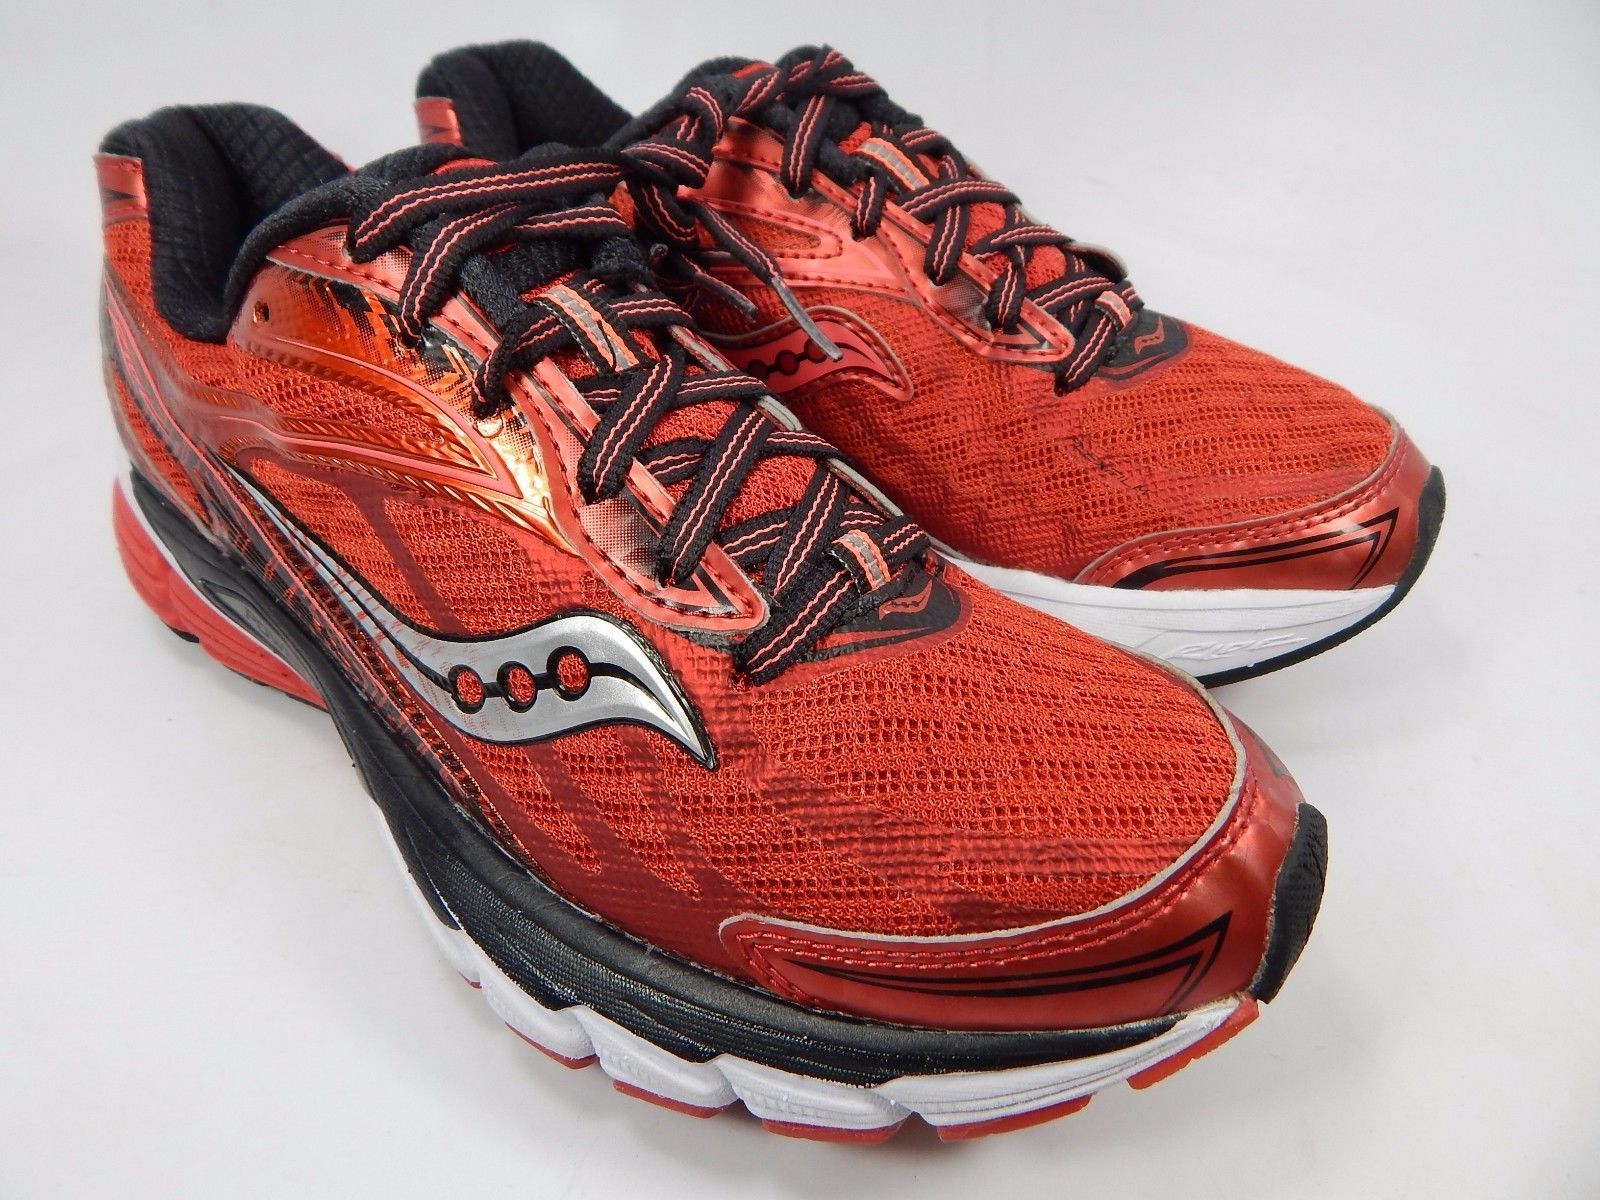 Saucony Ride 8 Women's Running Shoes Size US 7 M (B) EU 38 Red S10273-5